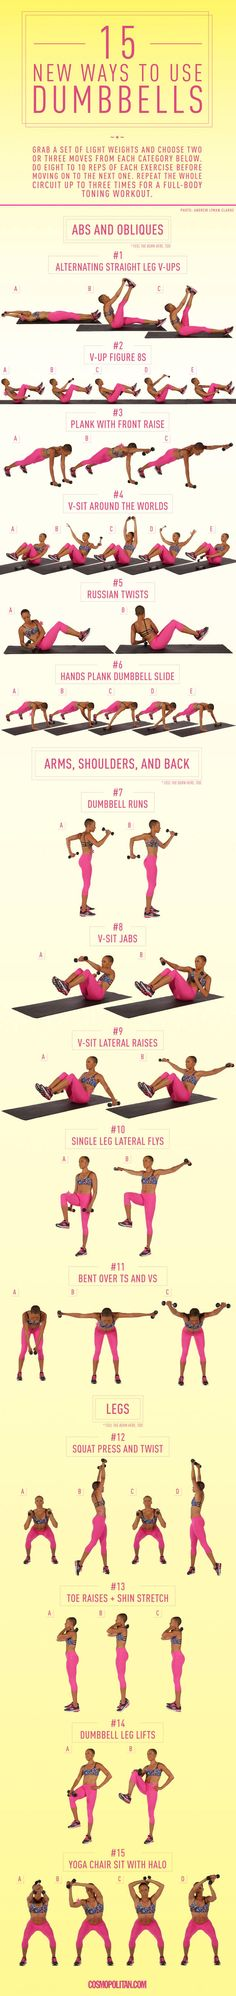 15 new ways to use Dumbbells | Cosmopolitan